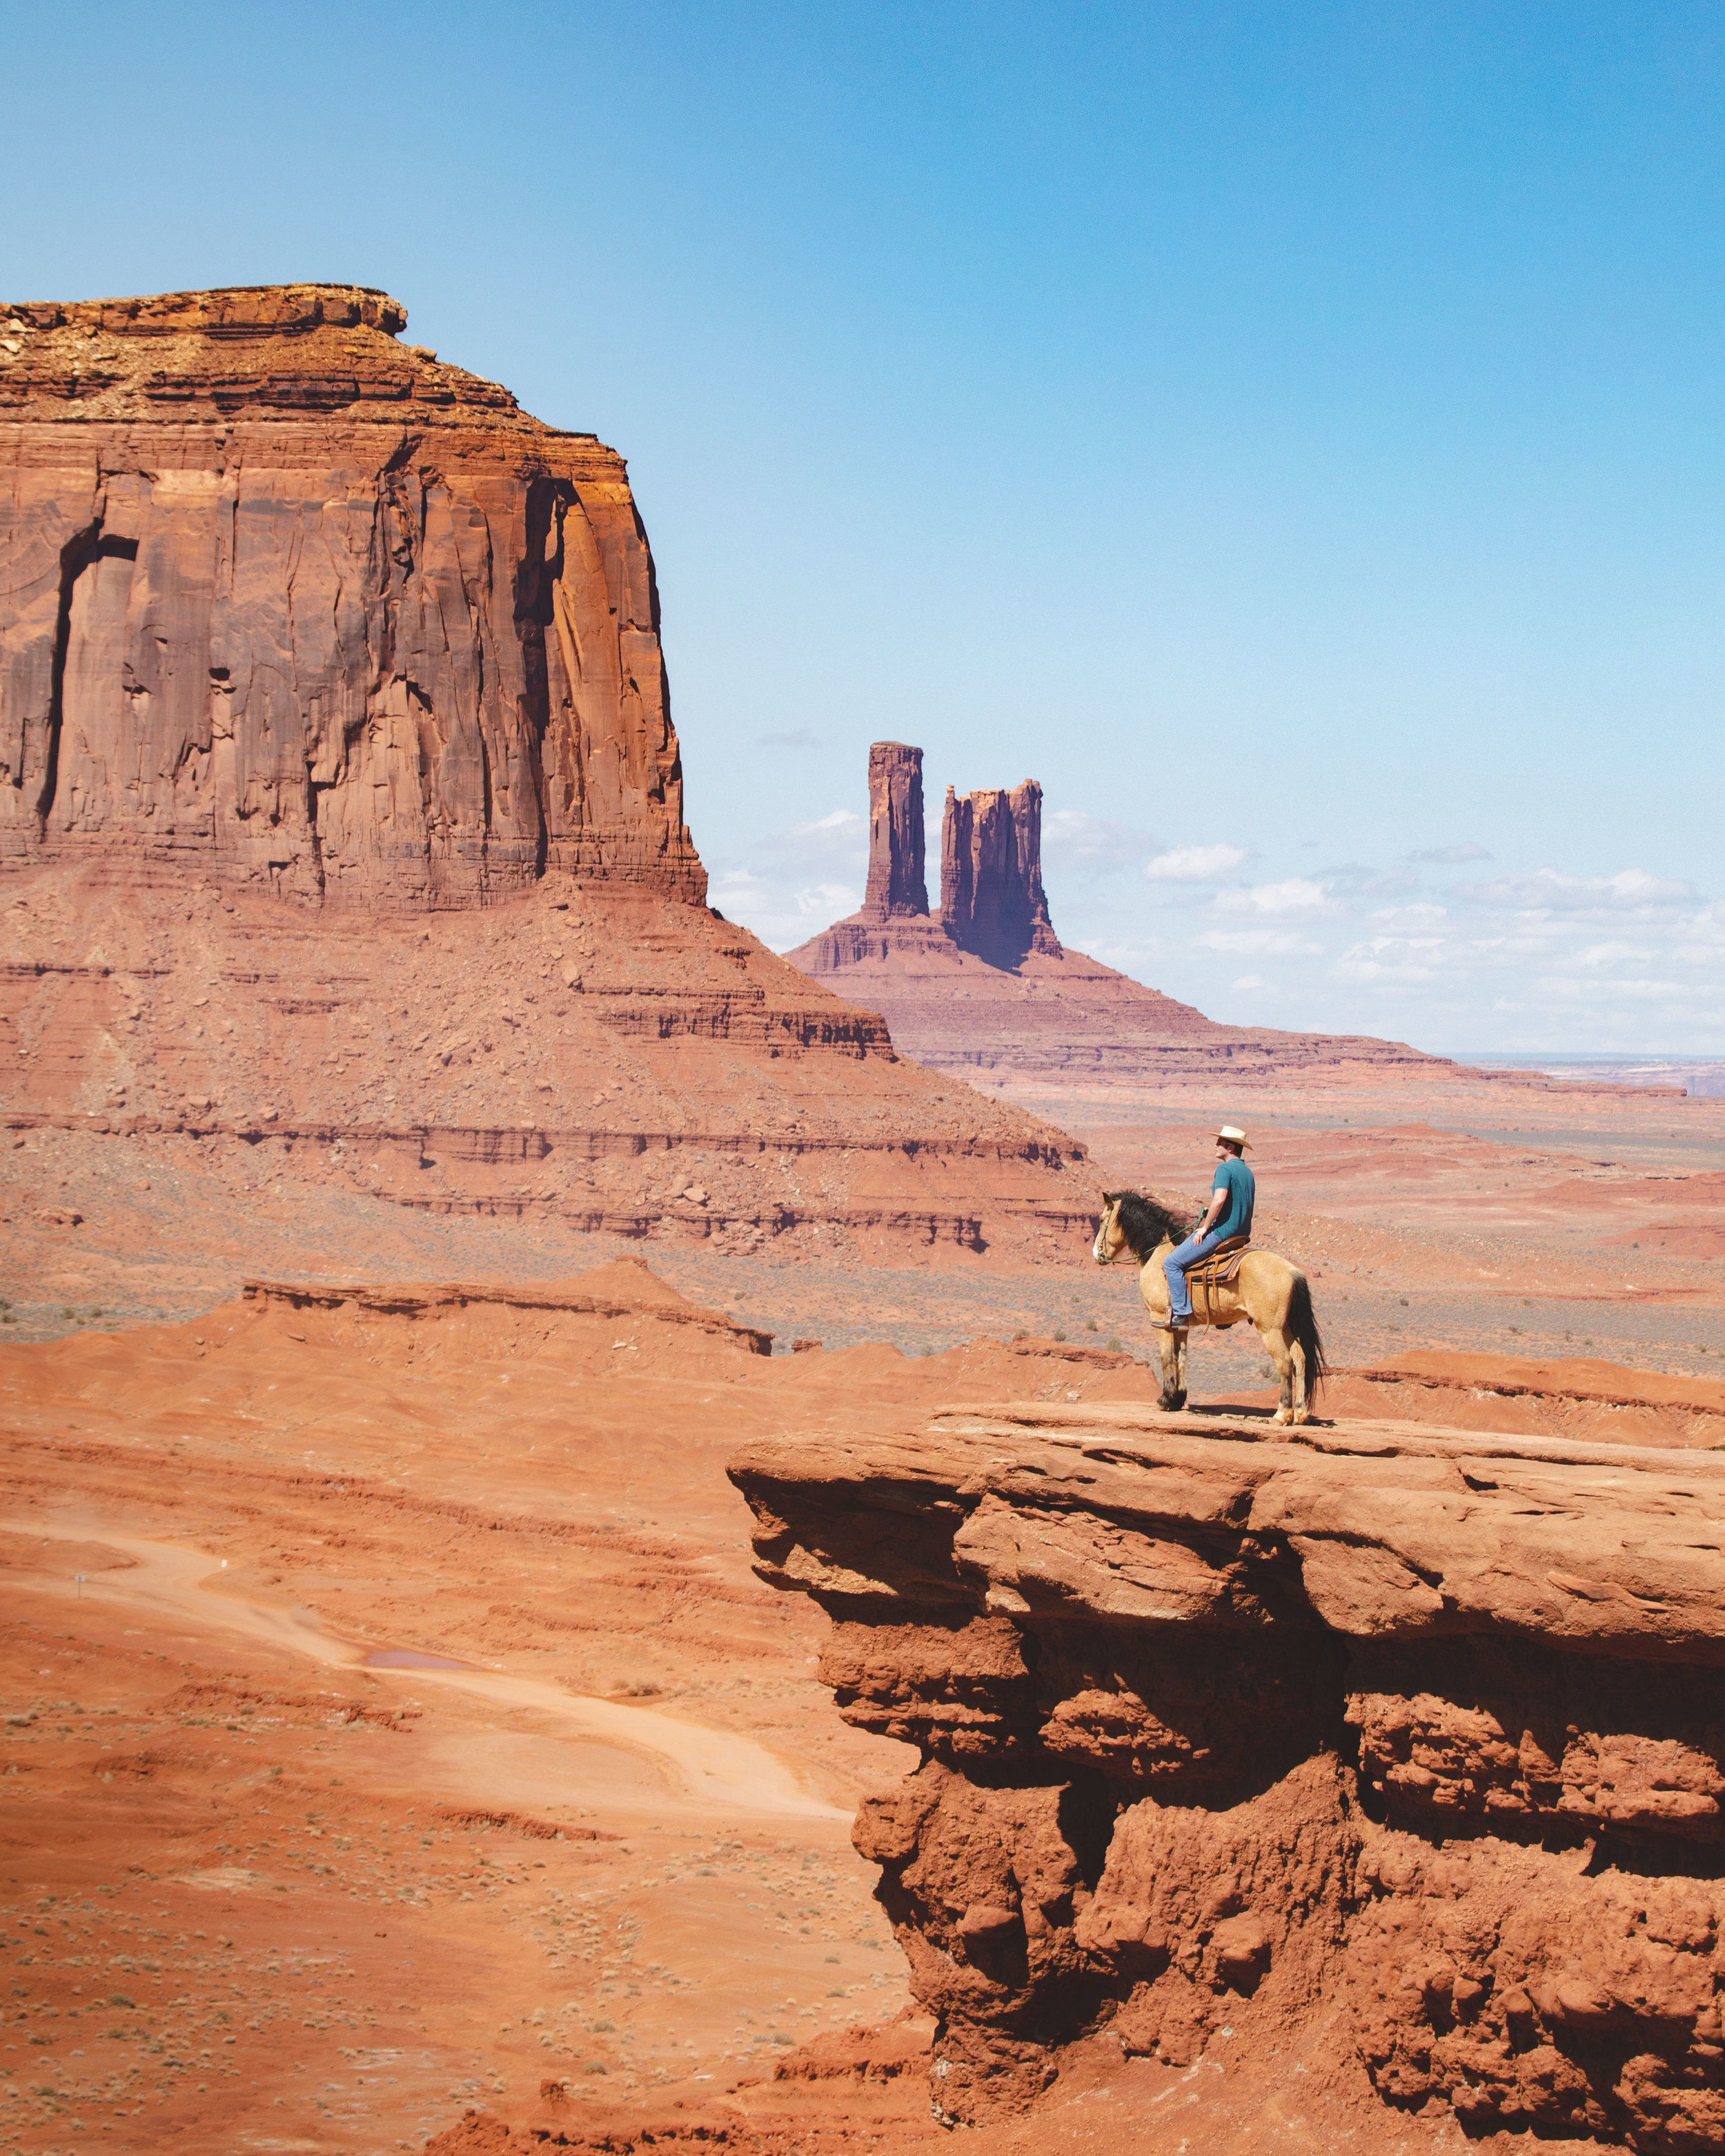 The horse at John Ford Point in Monument Valley Scenic Drive